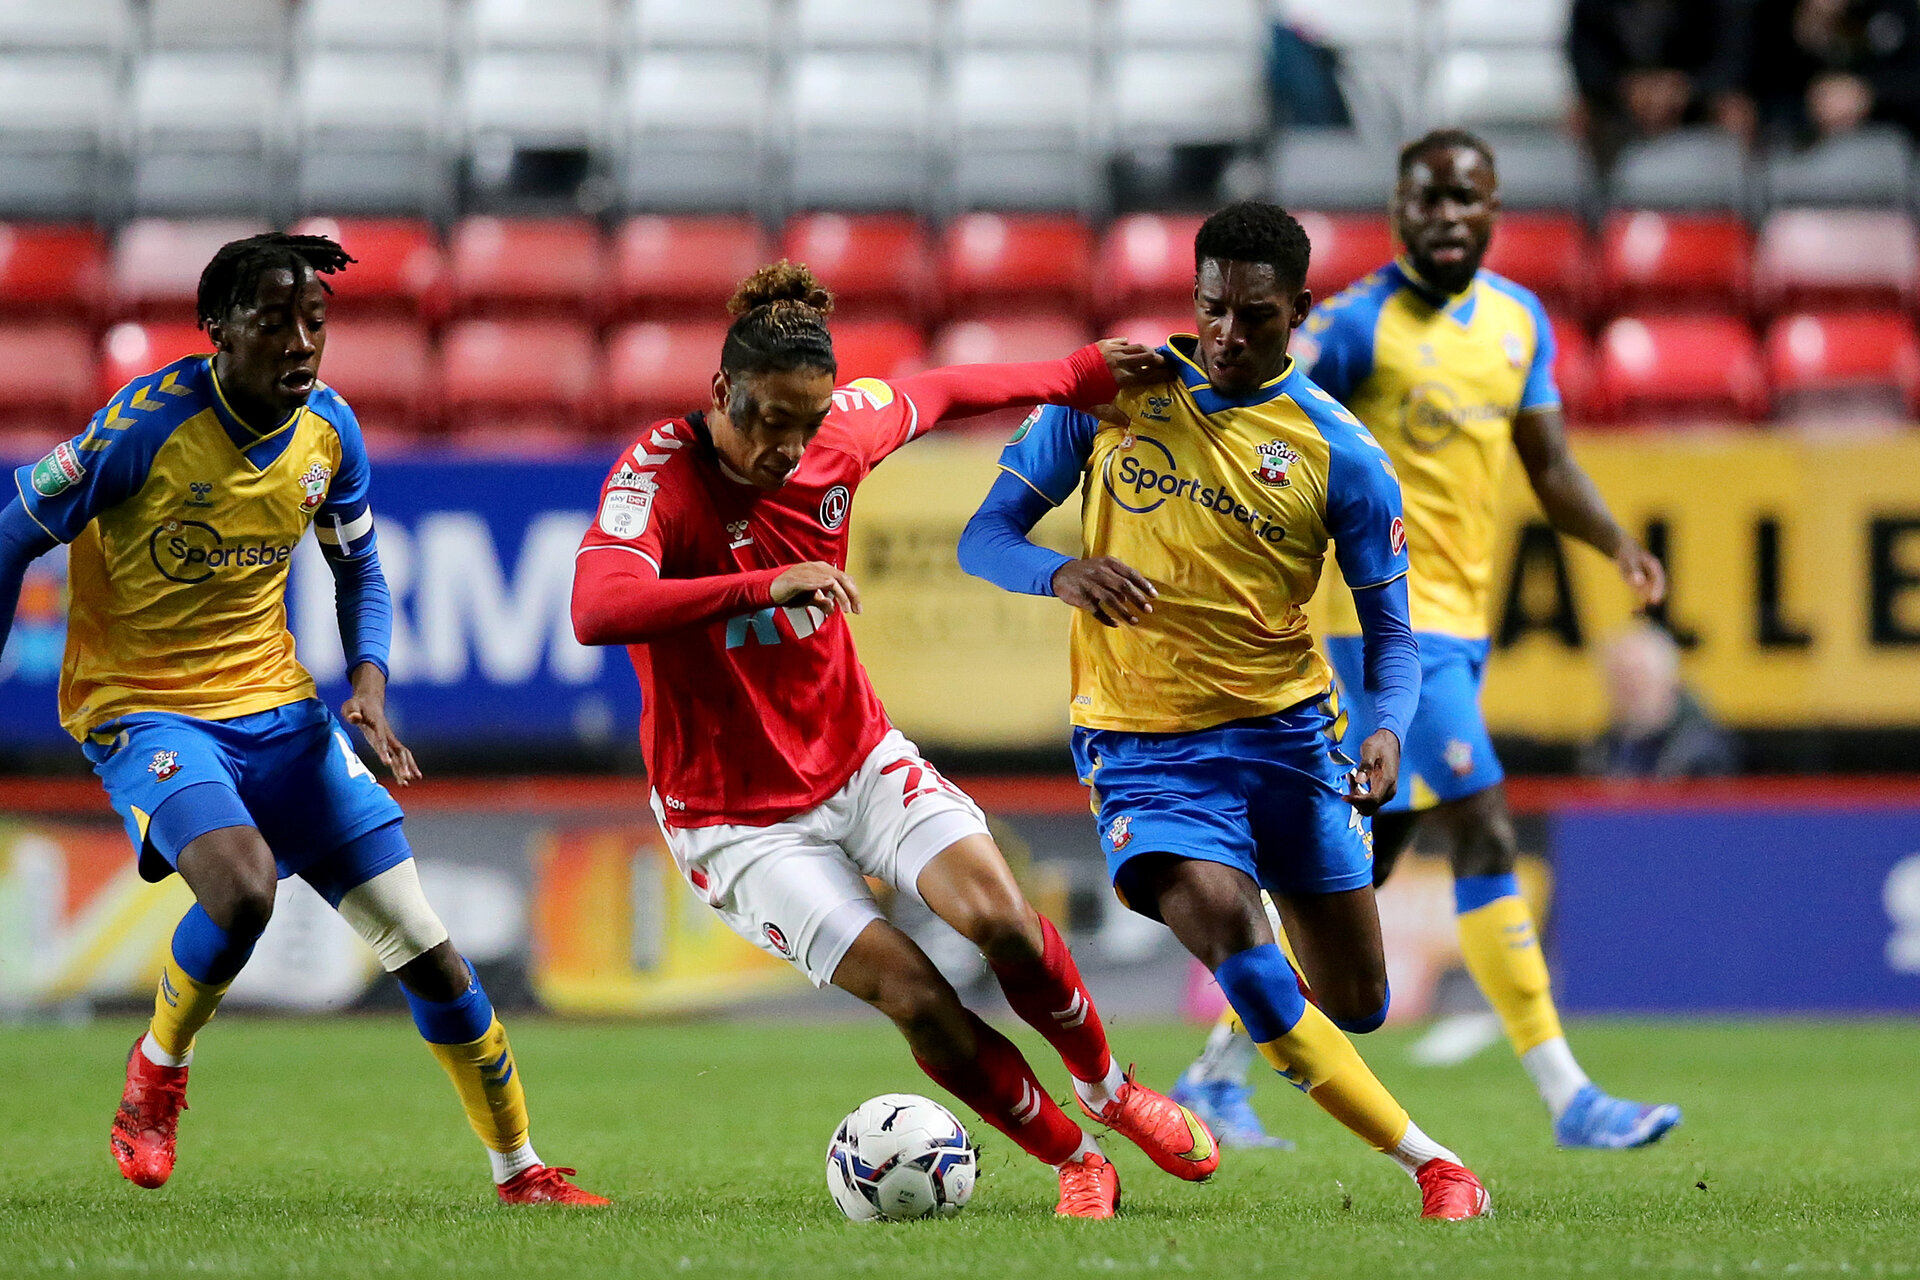 LONDON, ENGLAND - OCTOBER 06:  during the Papa John's Trophy match between Charlton Athletic and Southampton B Team at The Valley on October 06, 2021 in London, England. (Photo by Isabelle Field/Southampton FC via Getty Images)